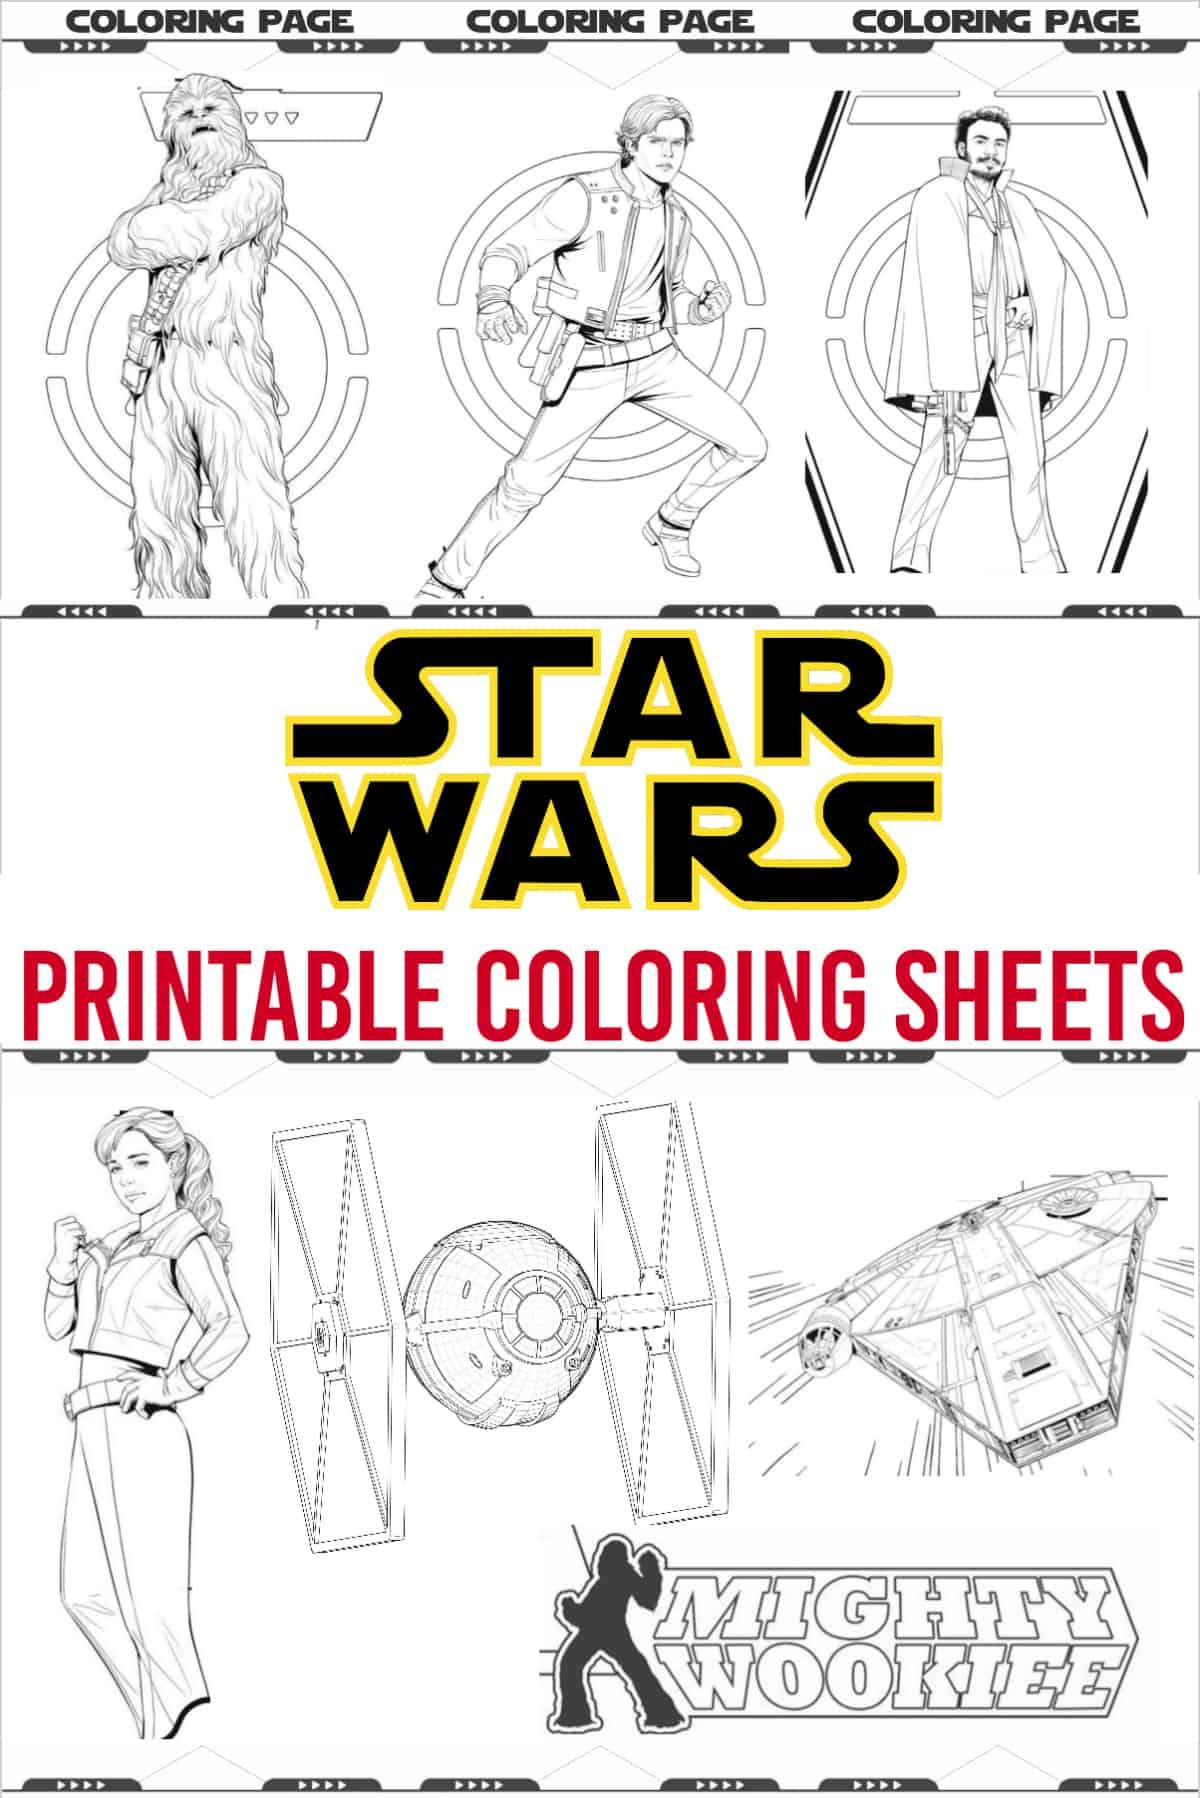 - Star Wars Coloring Pages - Free Star Wars Printables (With Images